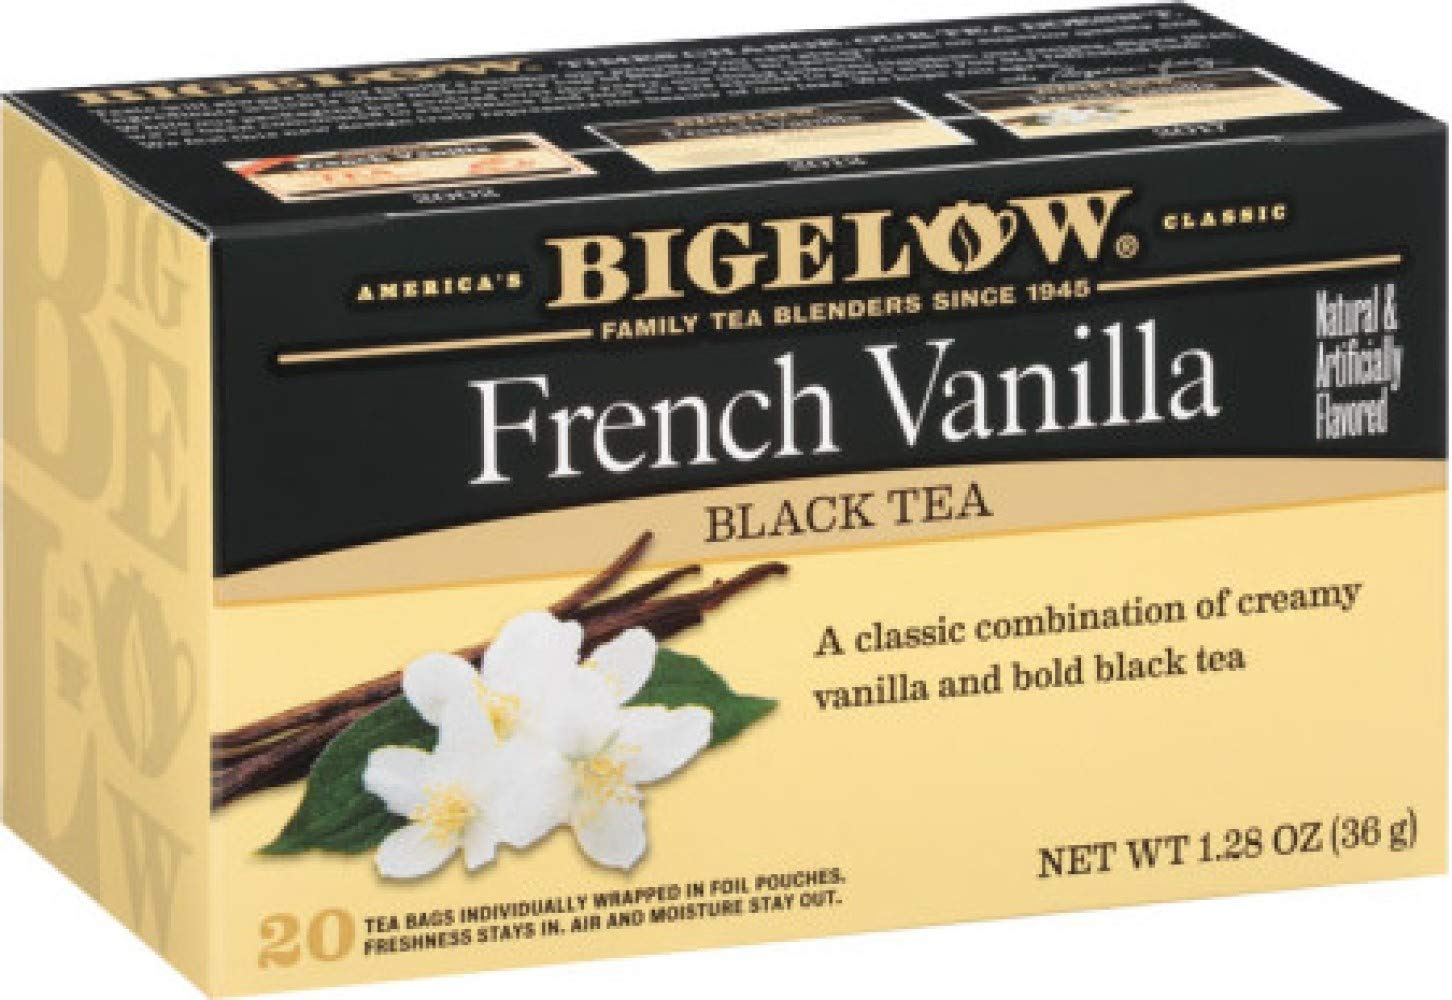 Black tea with natural and artificial vanilla flavors